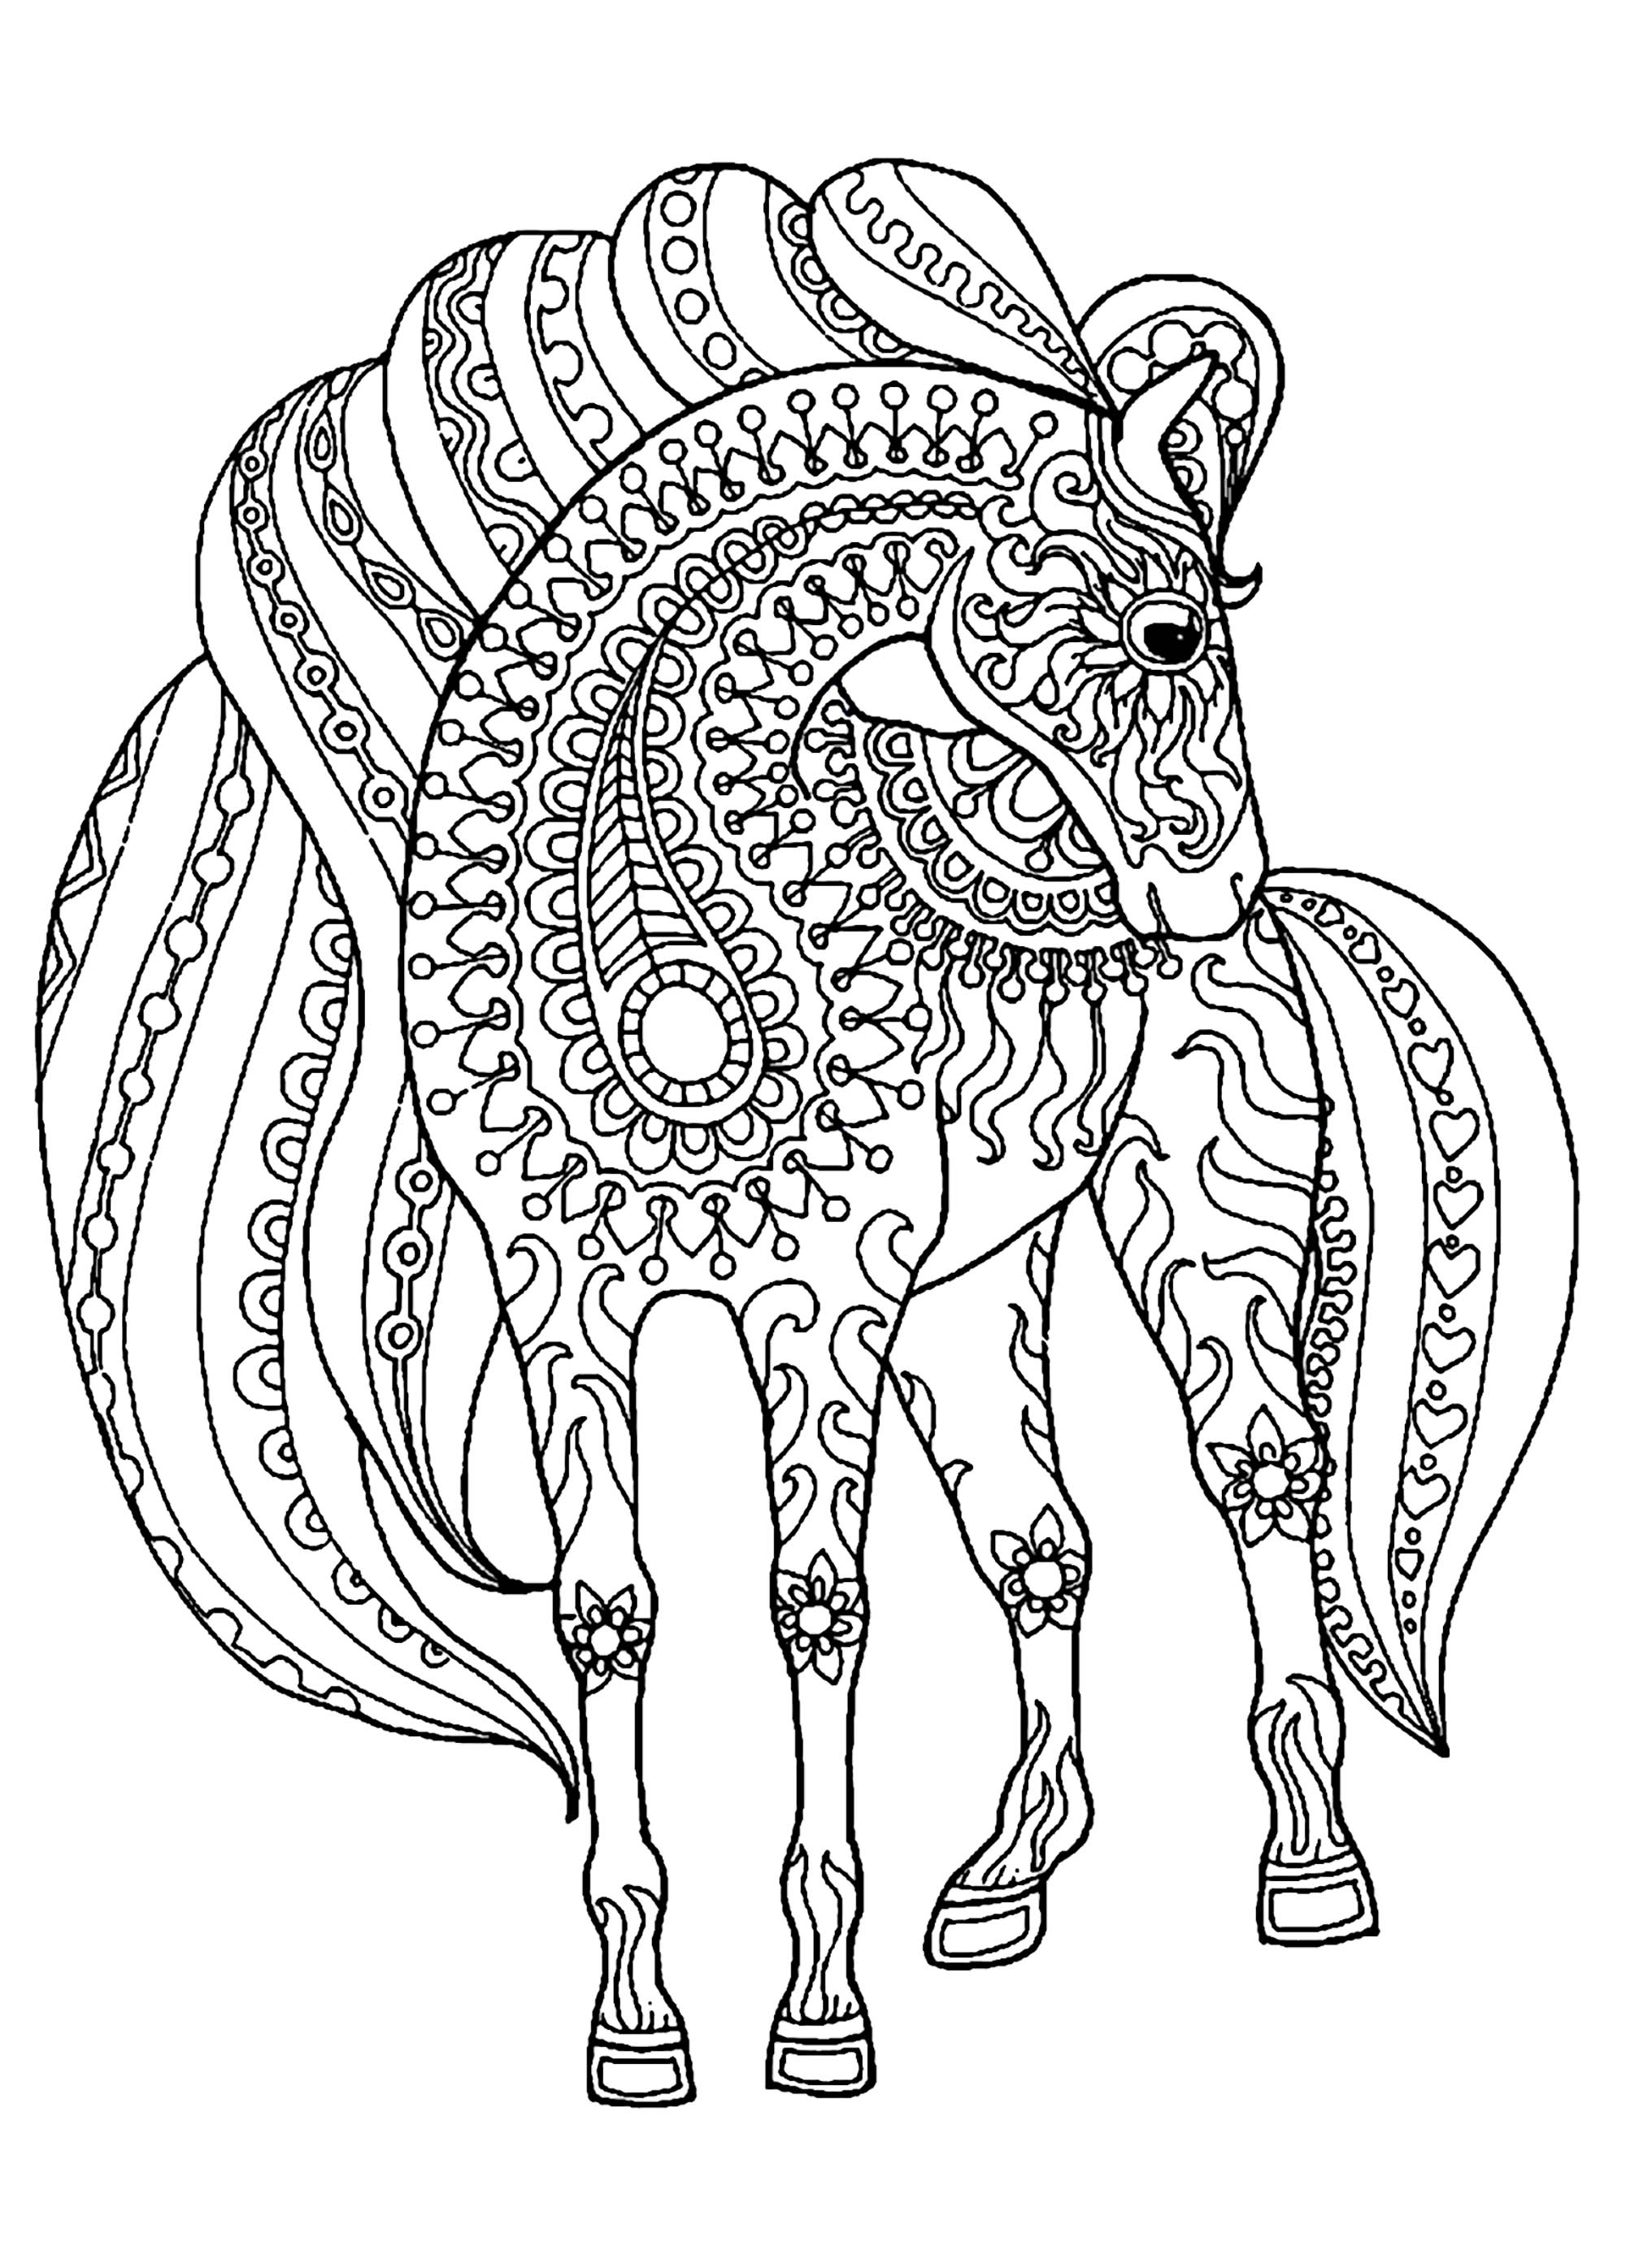 horse with simple zentangle patterns